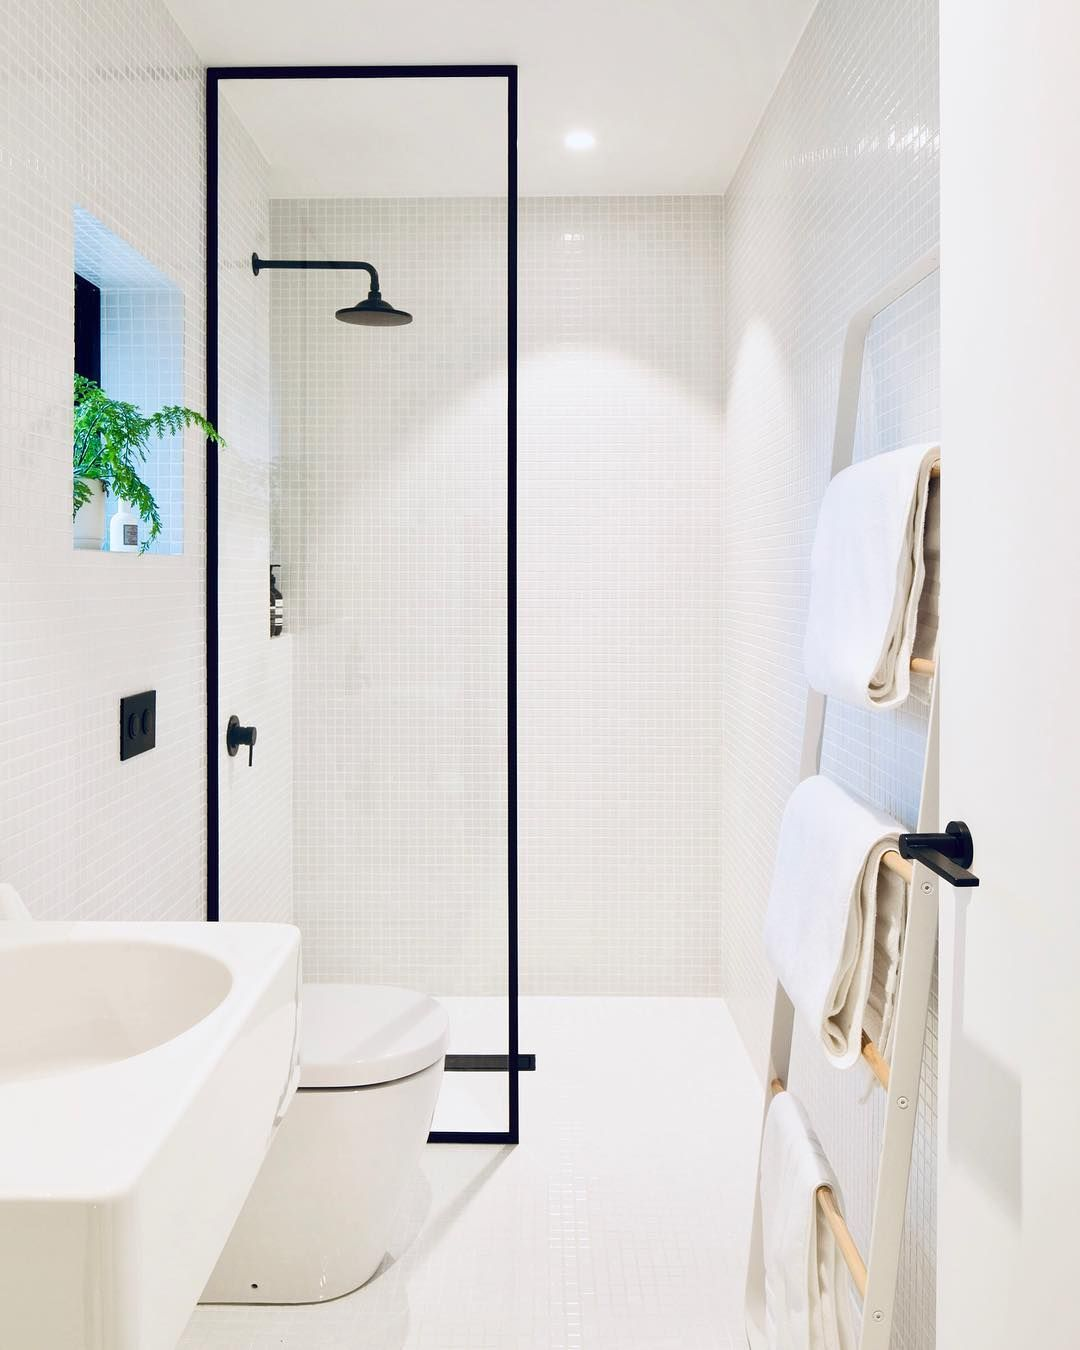 Interior Scandinavian Design On Instagram You Loved This Punchy Little Bathroom So Much W Minimalist Bathroom Design Modern Bathroom Design